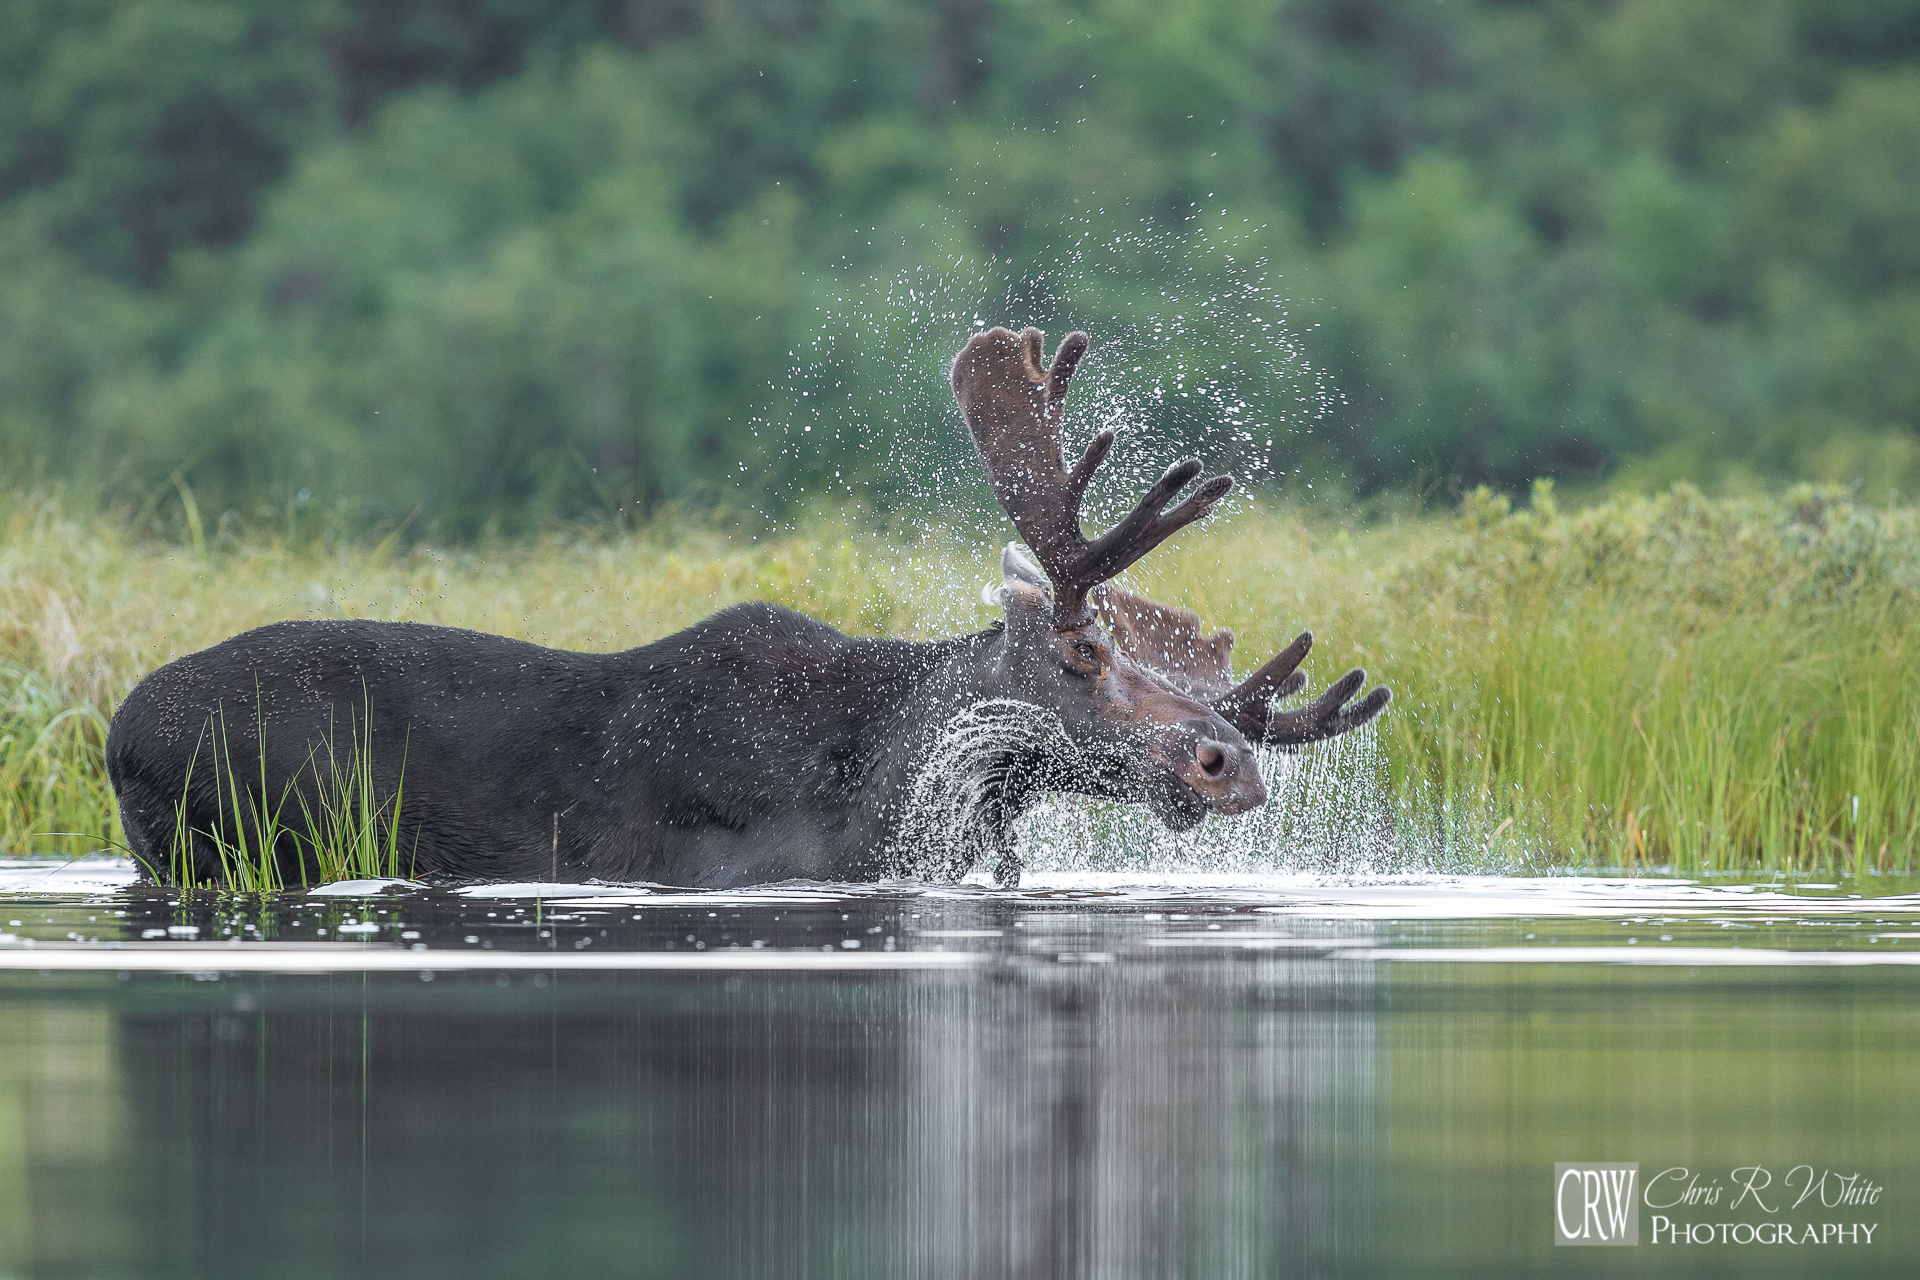 Water sprays from his massive head and antlers as this bull shakes.